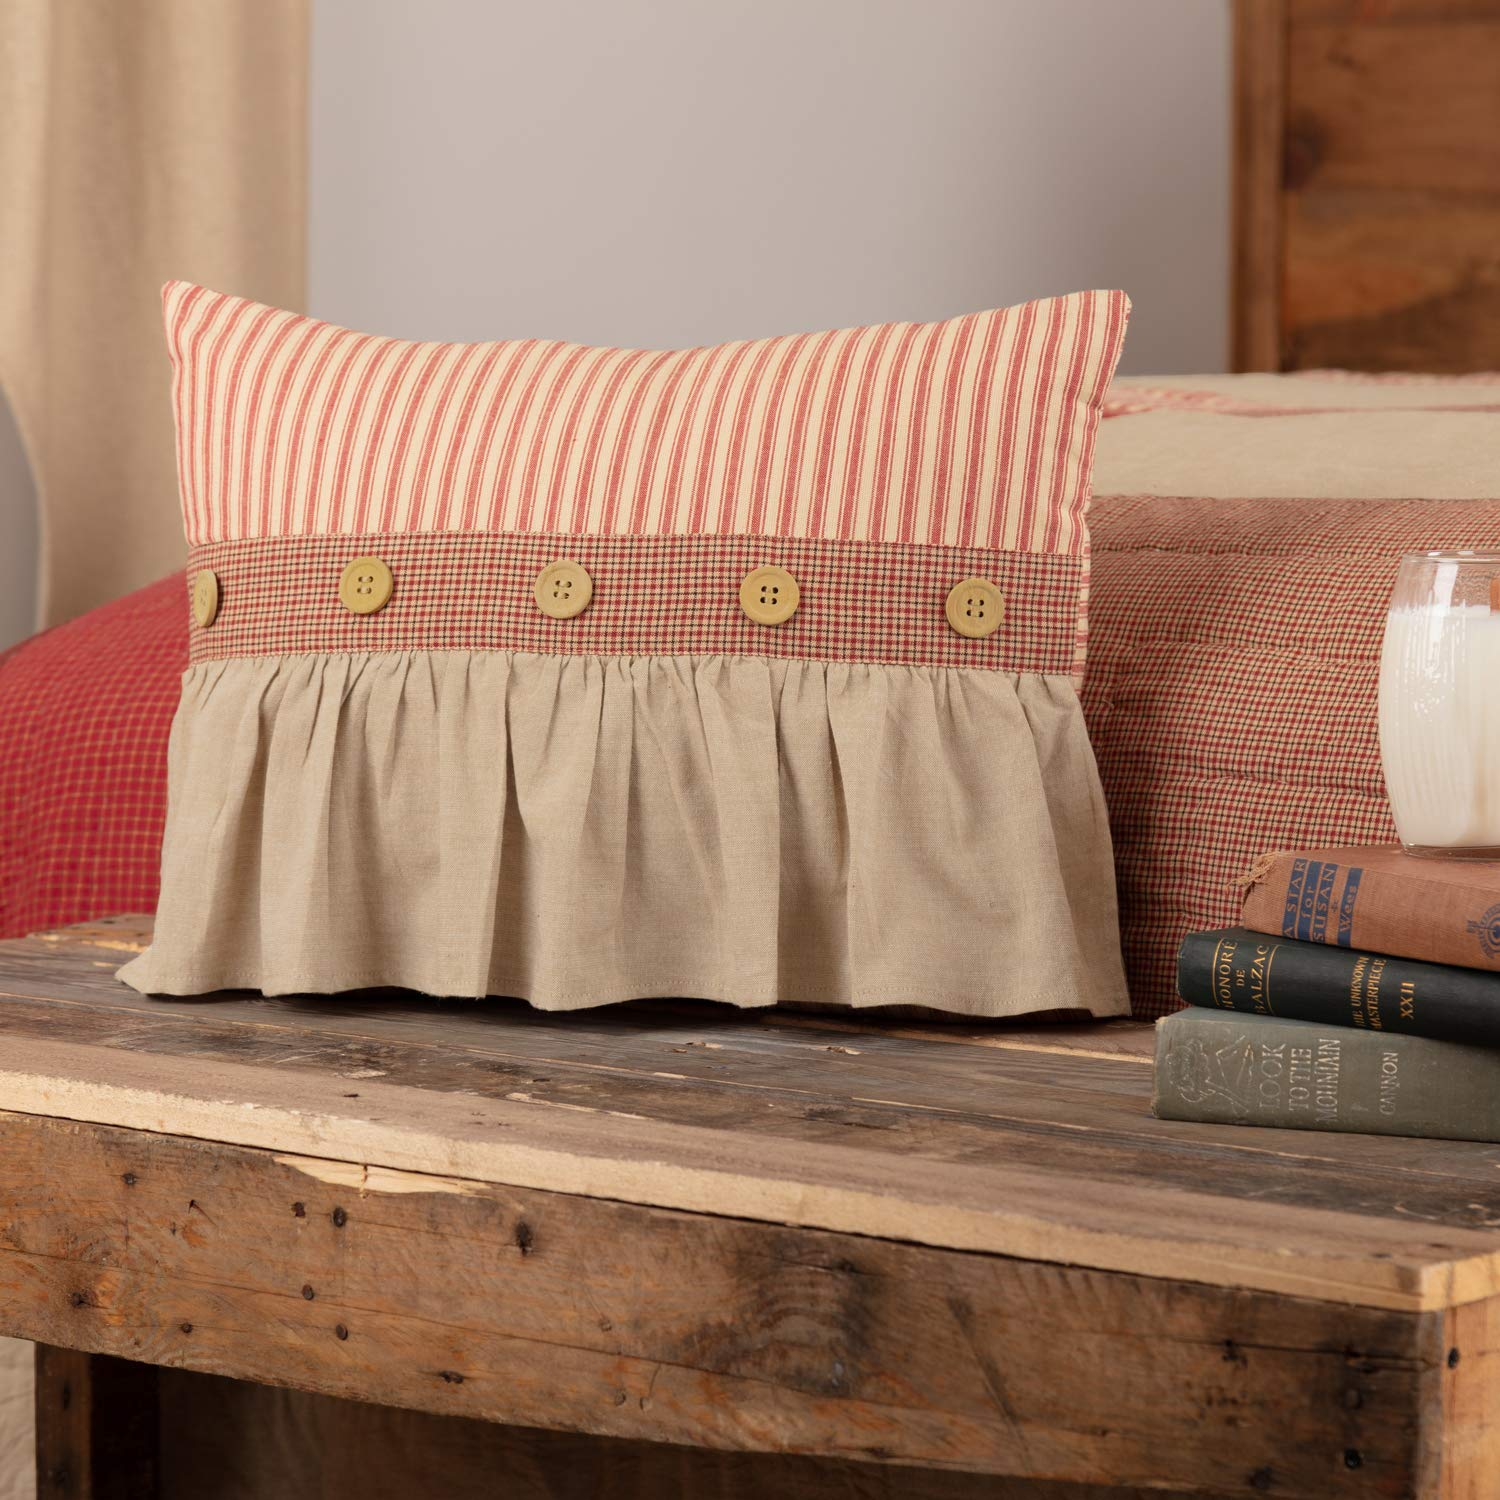 VHC Brands Farmhouse Bedding Rory Schoolhouse Red Cotton Buttons Chambray Striped Rectangle Cover Insert Pillow Brick